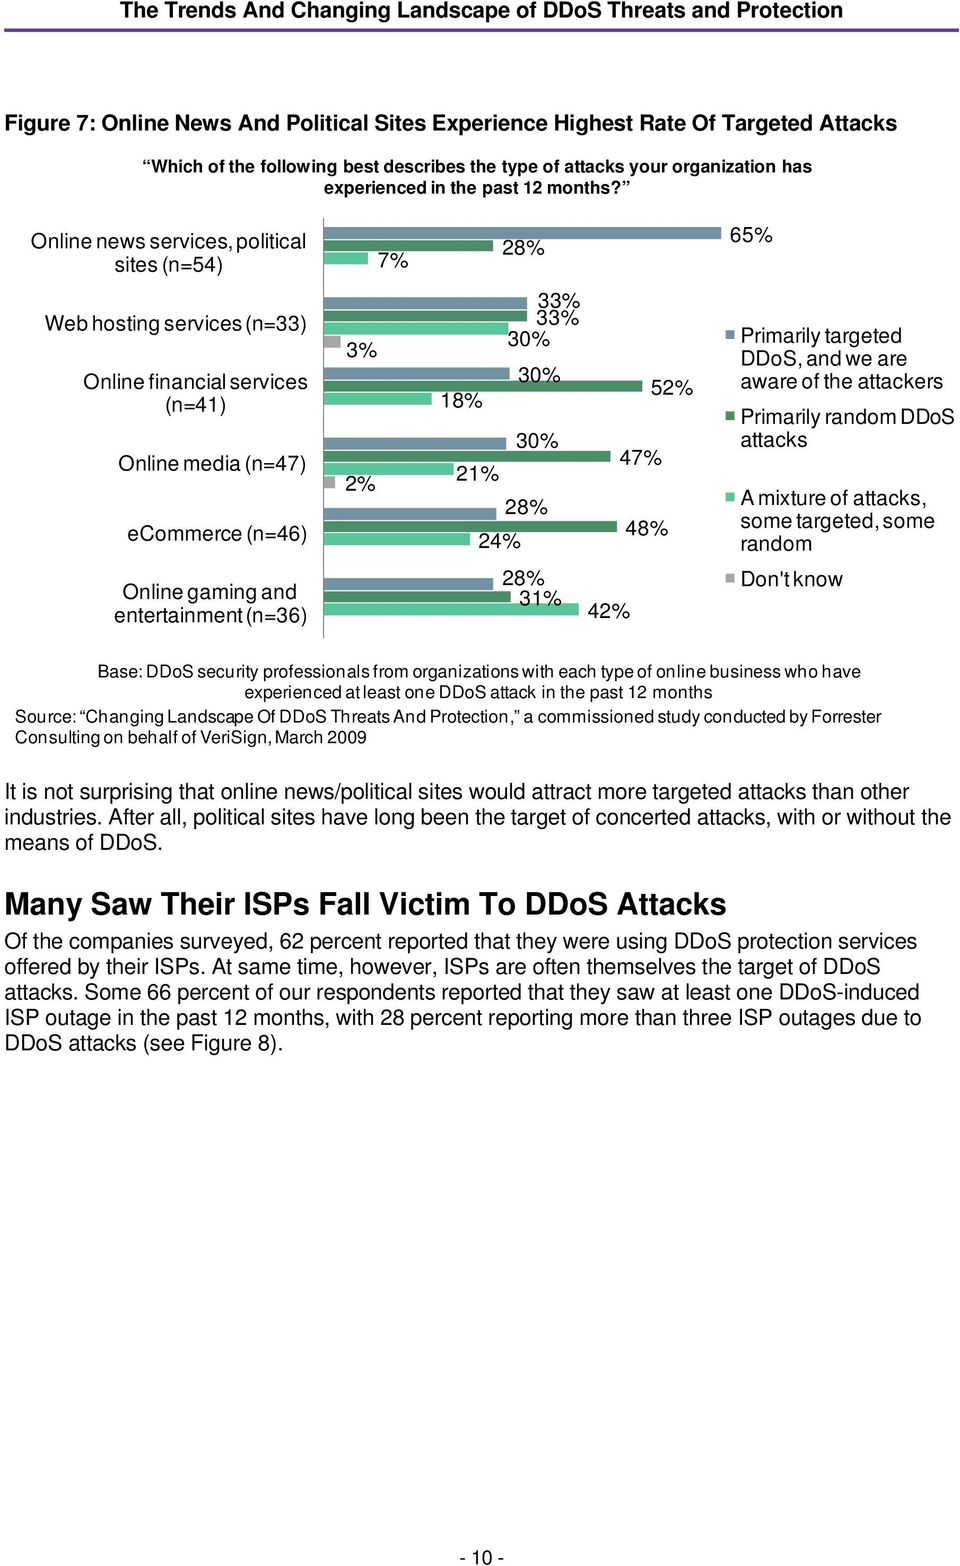 47% 48% Primarily targeted DDoS, and we are aware of the attackers Primarily random DDoS attacks A mixture of attacks, some targeted, some random Online gaming and entertainment (n=36) 28% 31% 42%